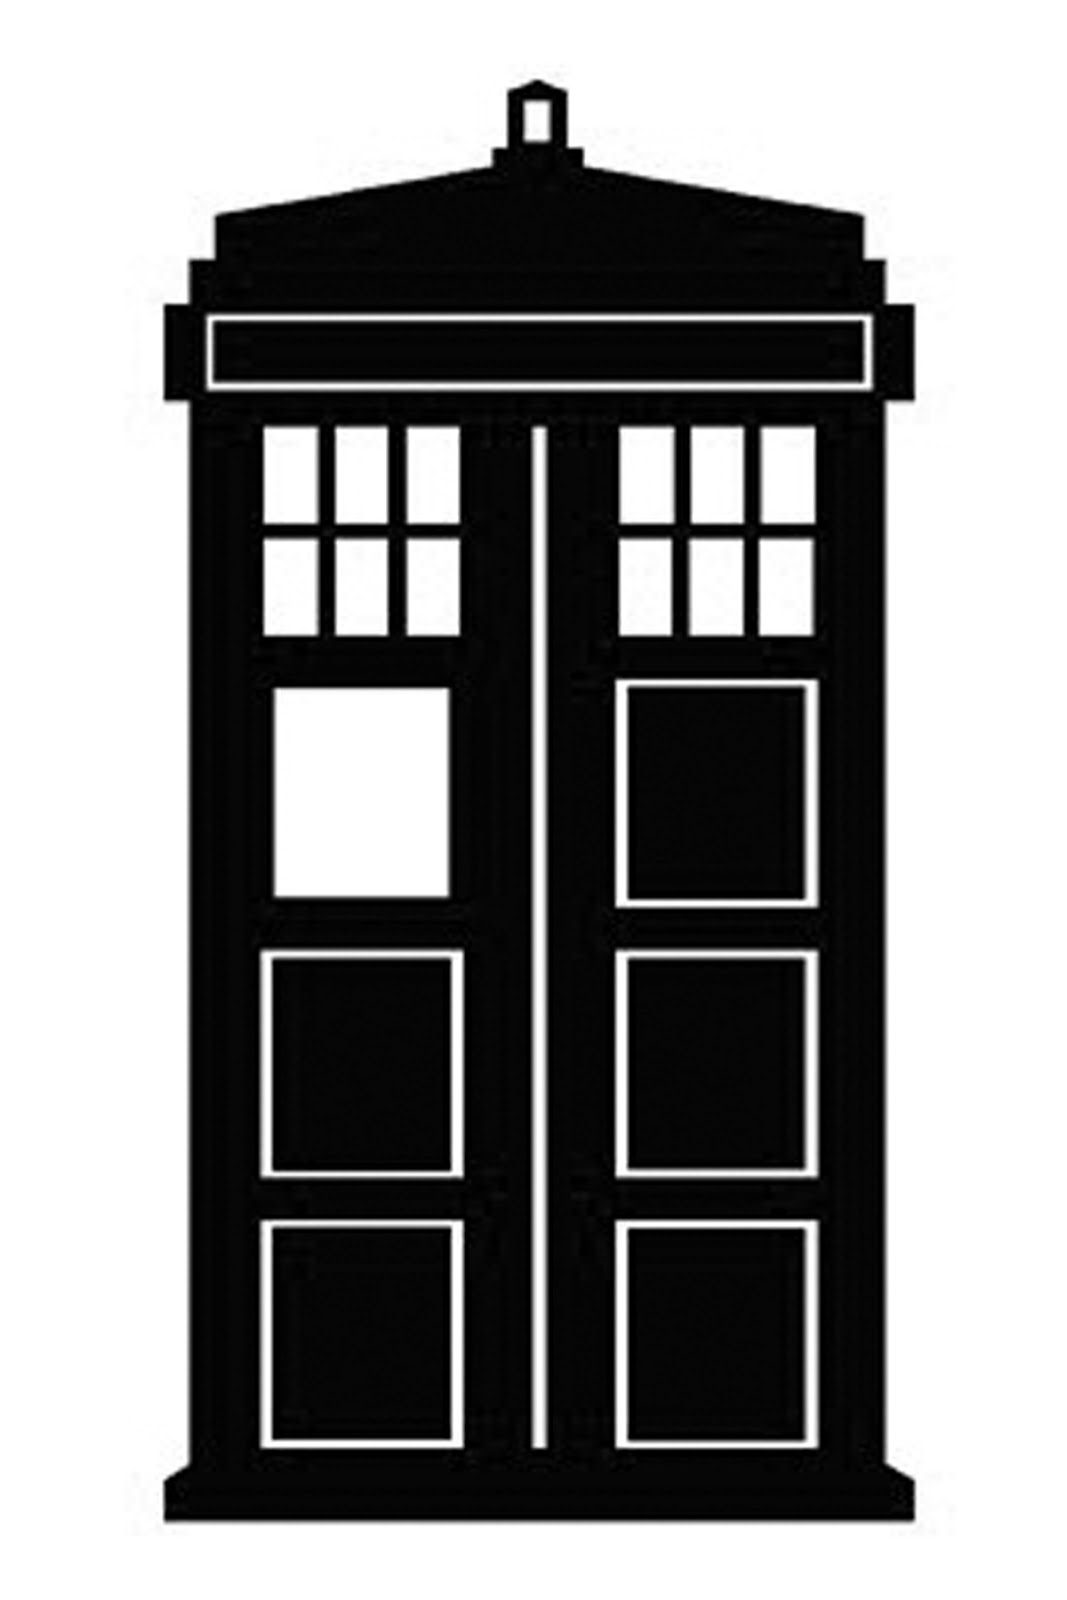 Doctor Who Stencil Silhouette Outline Cl-Doctor Who Stencil Silhouette Outline Clipart Mania!-10